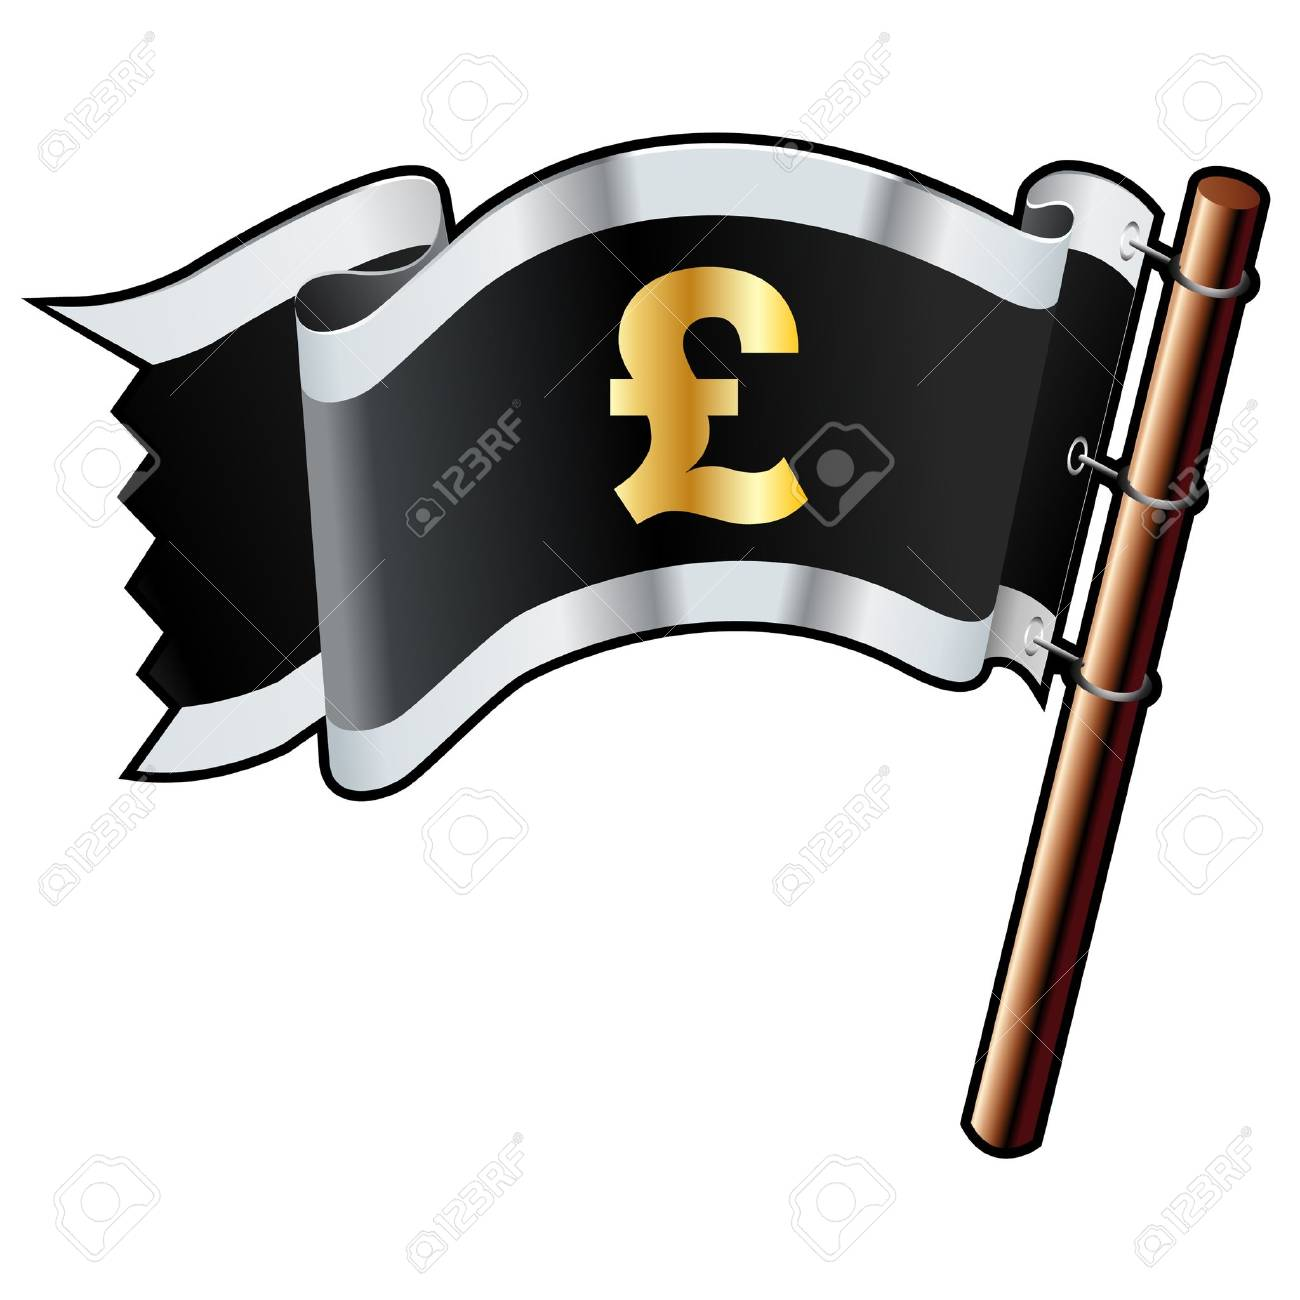 British Pound Currency Symbol On Black Silver And Gold Vector